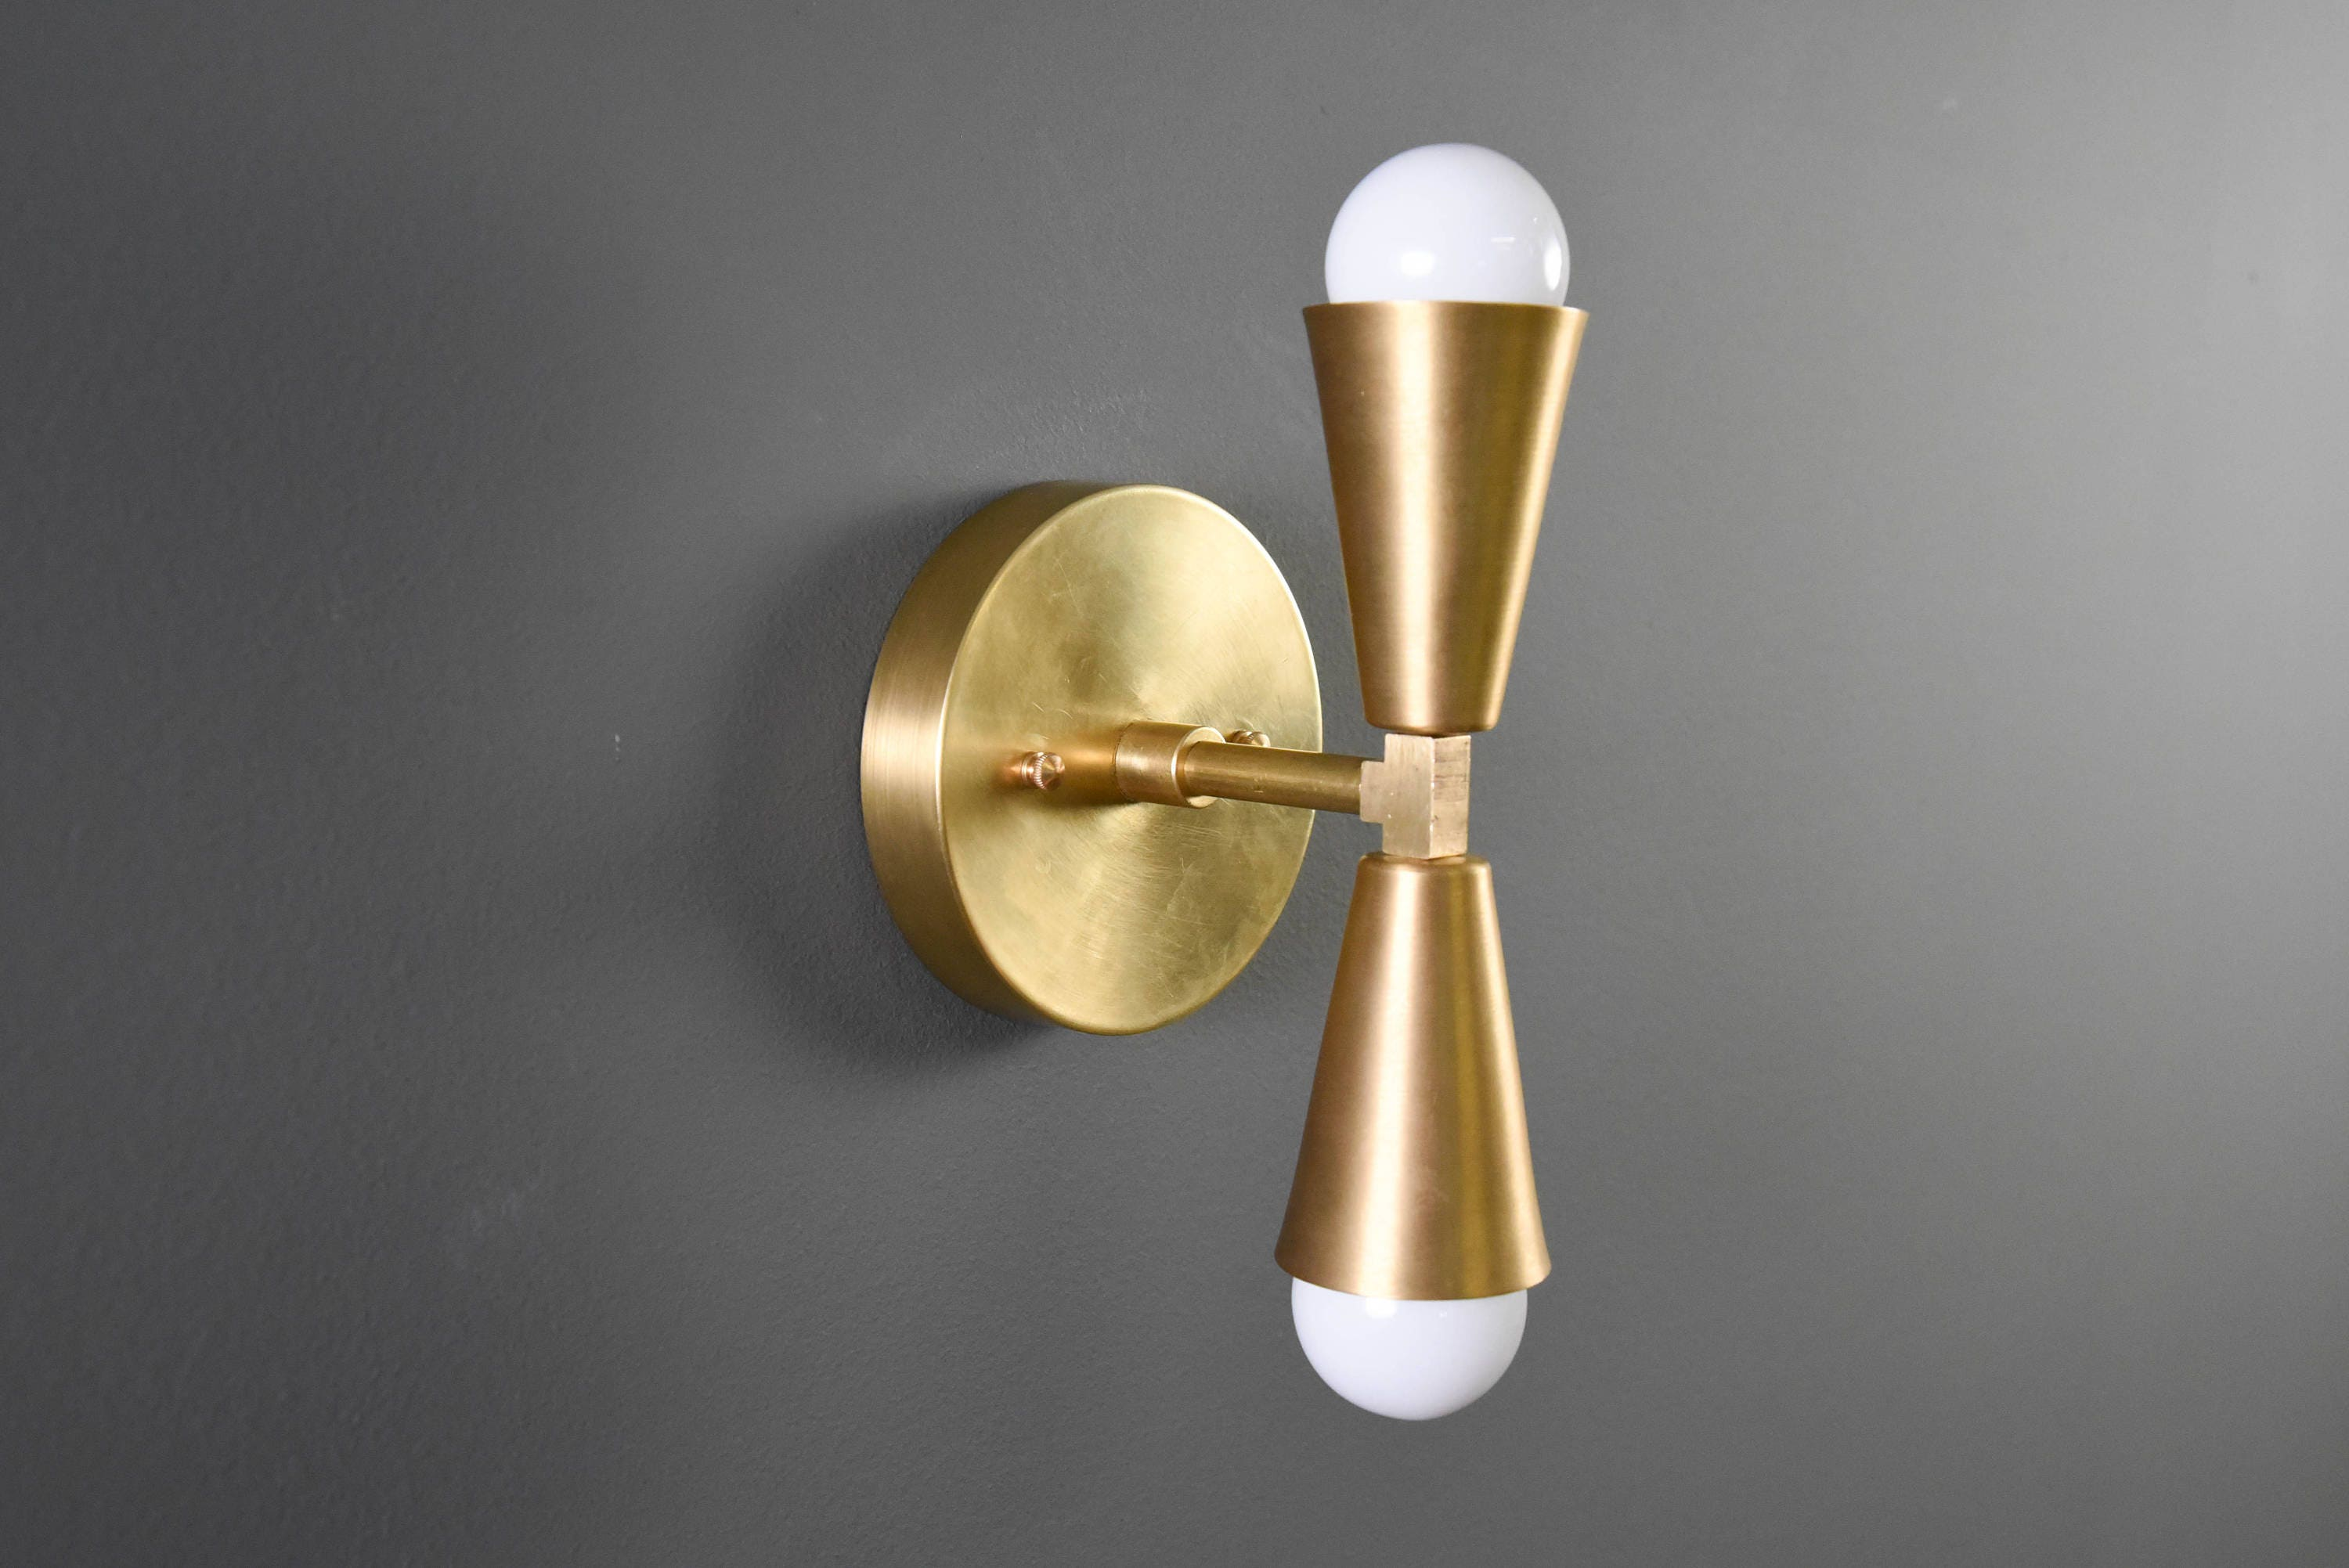 modern fullxfull light listing gold gallery vanity wall raw bulb photo bathroom il brass sconce